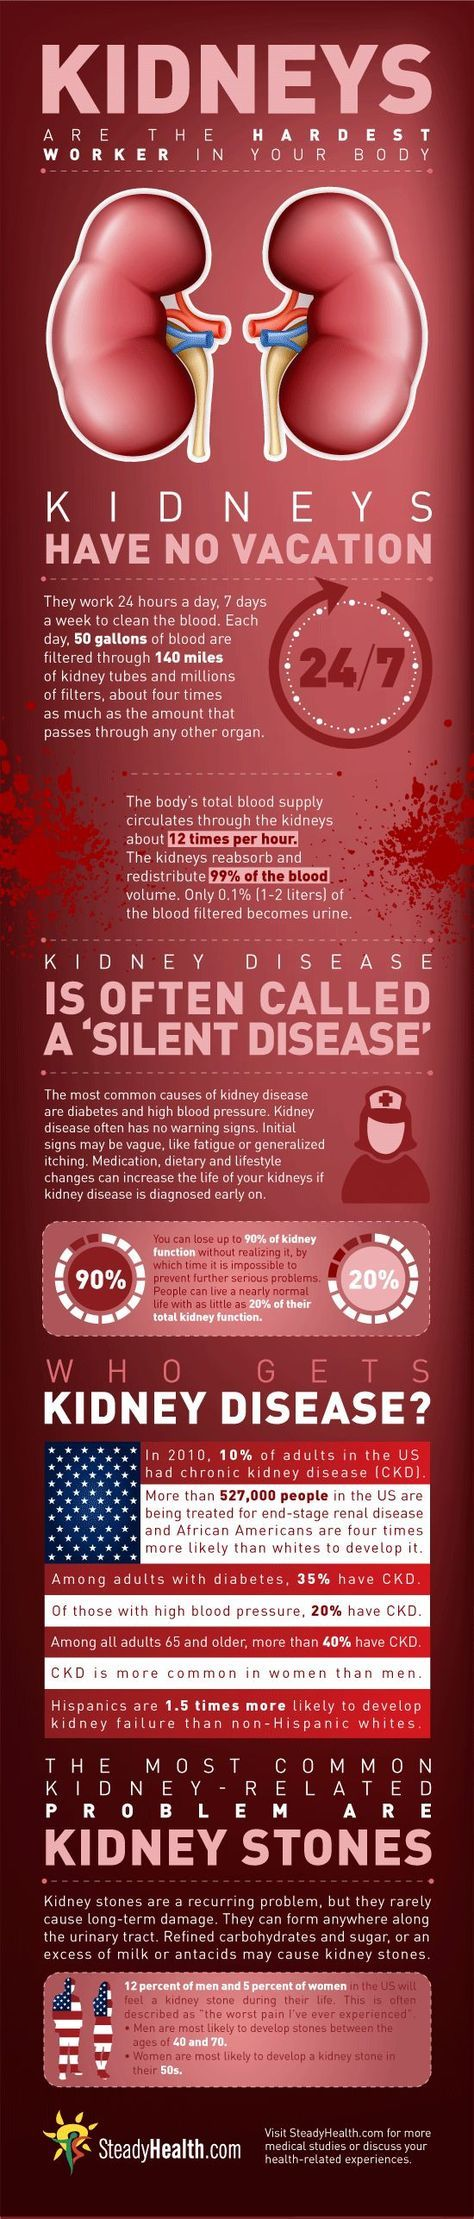 8 Common Habits That May Damage Kidneys -PositiveMed | Positive Vibrations in Health @Denice Castellanos